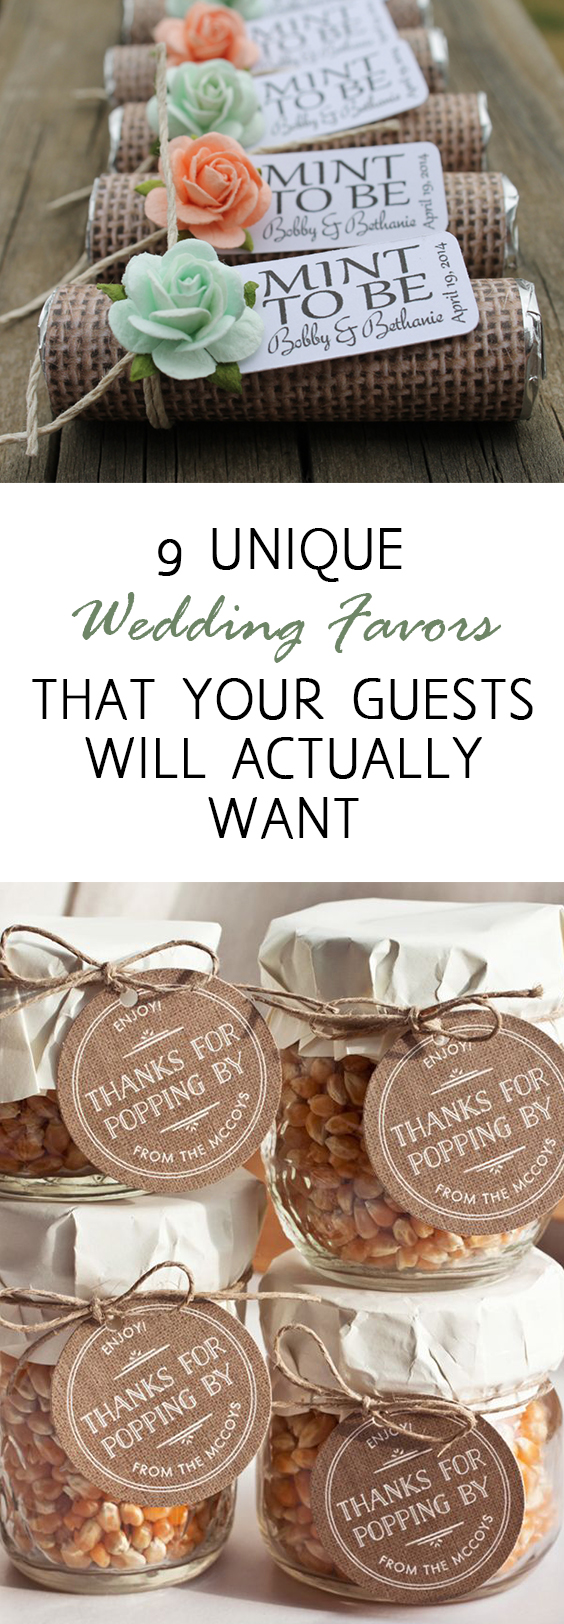 9 Unique Wedding Favors that Your Guests Will Actually Want - Oh My ...